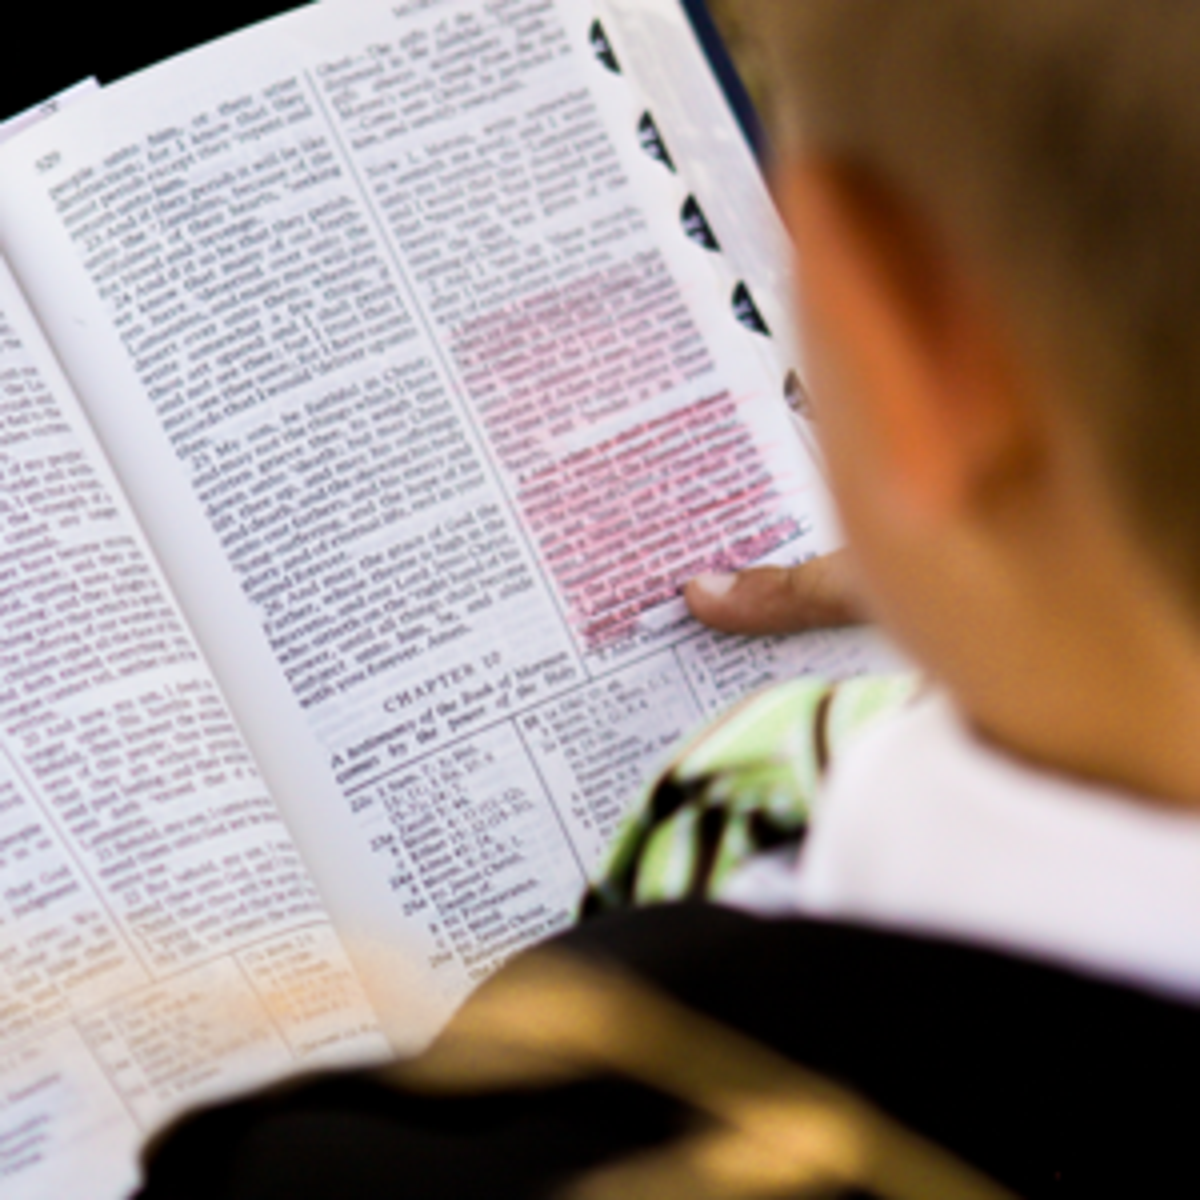 Studying the Book of Mormon